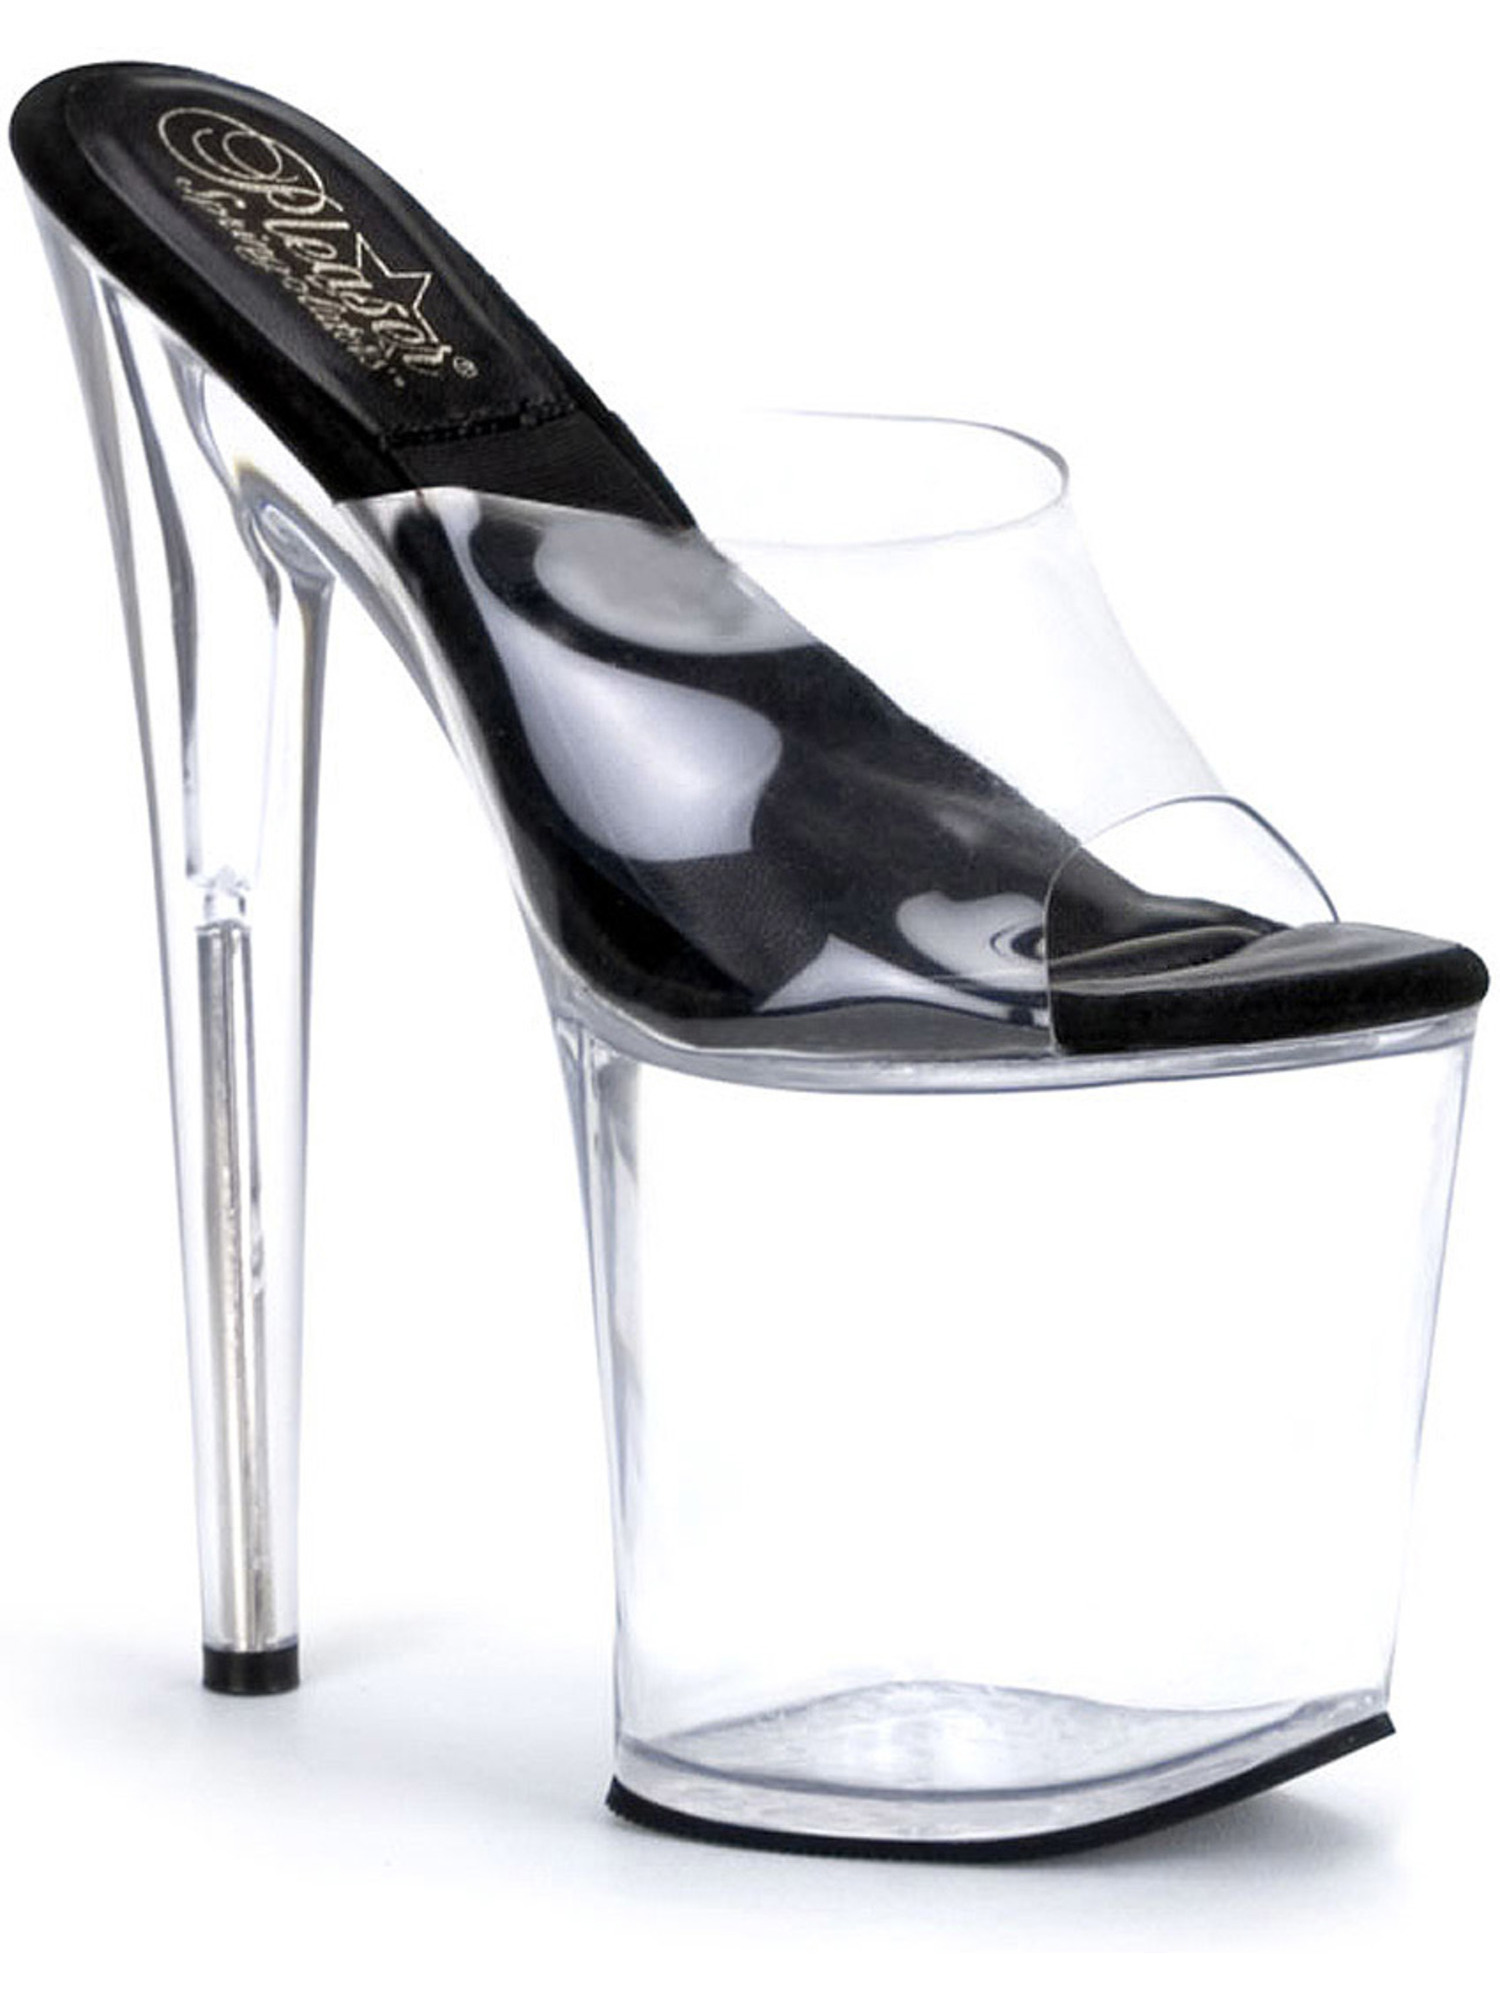 8 Inch High Platform Open Toe Shoes Clear Platform Sexy Stripper Shoes